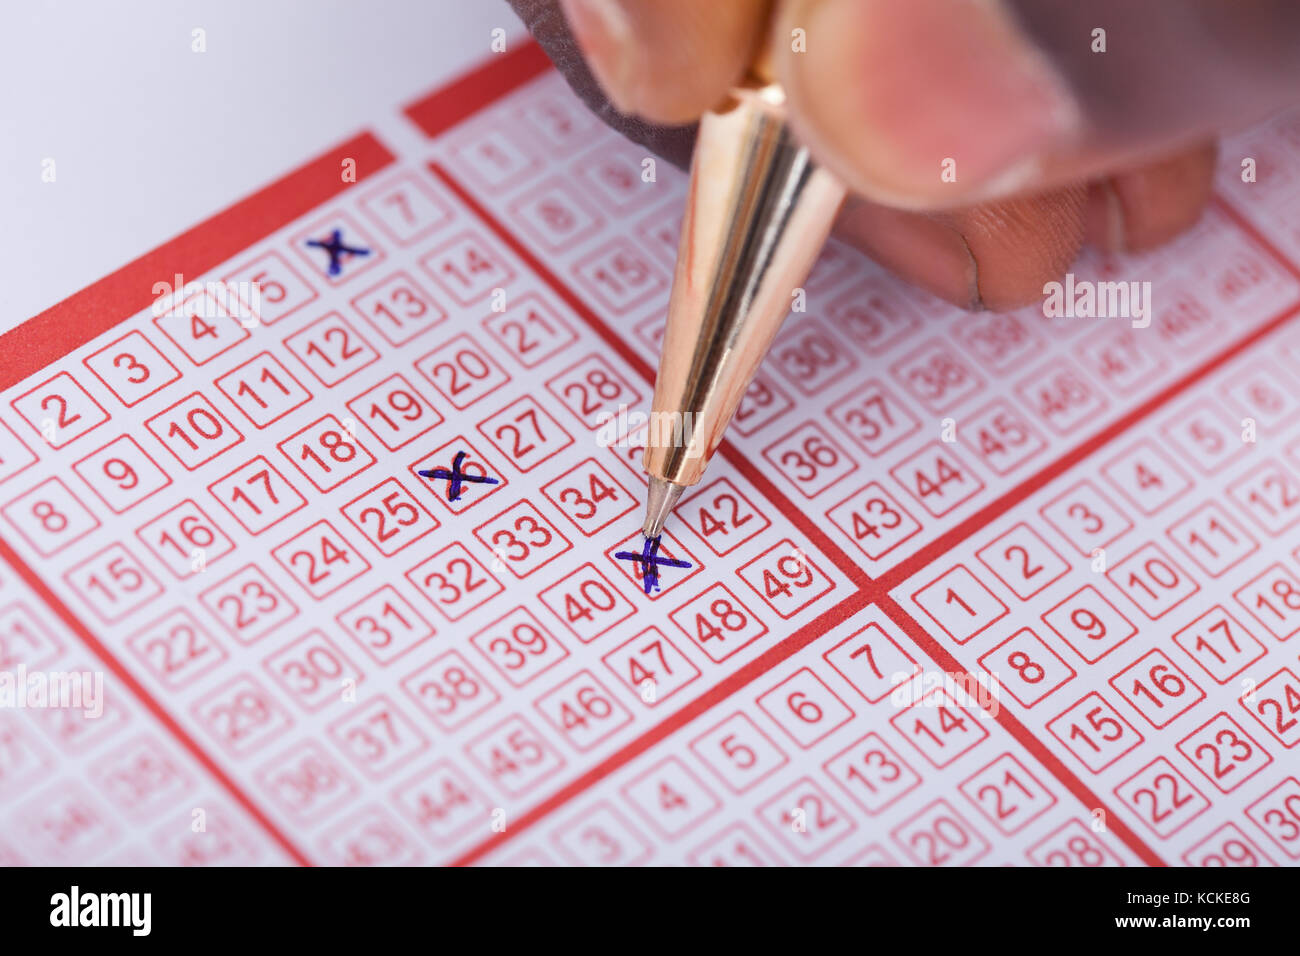 Winning Ticket Stock Photos & Winning Ticket Stock Images - Alamy